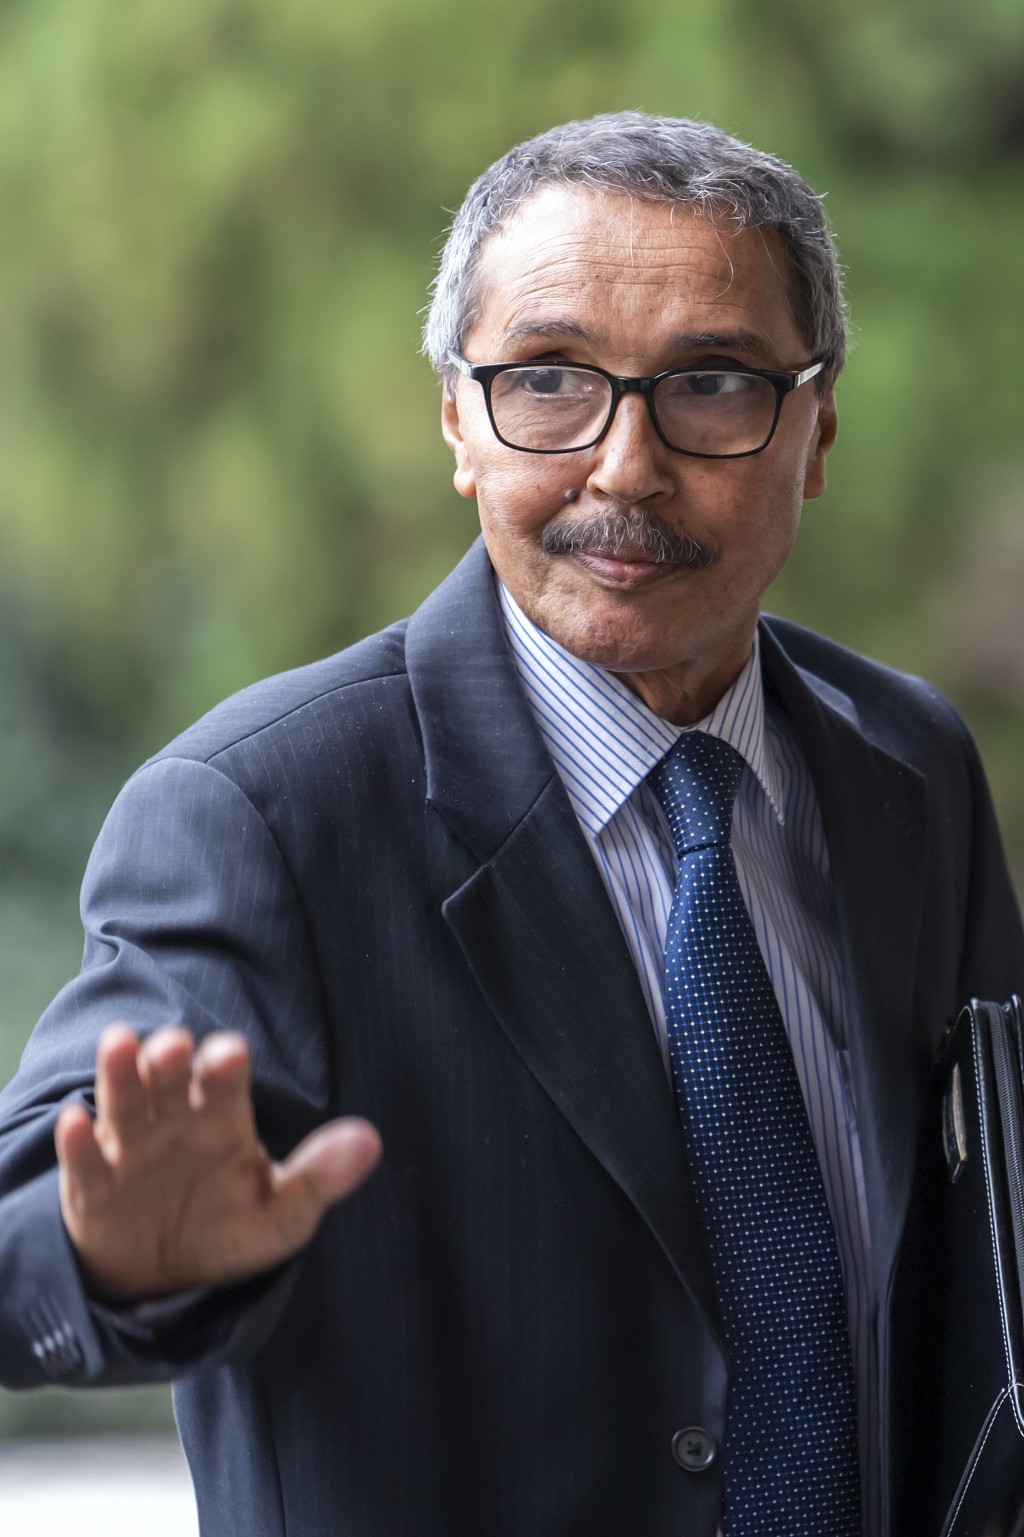 Khatri Addouh, leader of the Sahrawi delegation and Frente Polisario, arrives for a round table on Western Sahara at the European headquarters of the